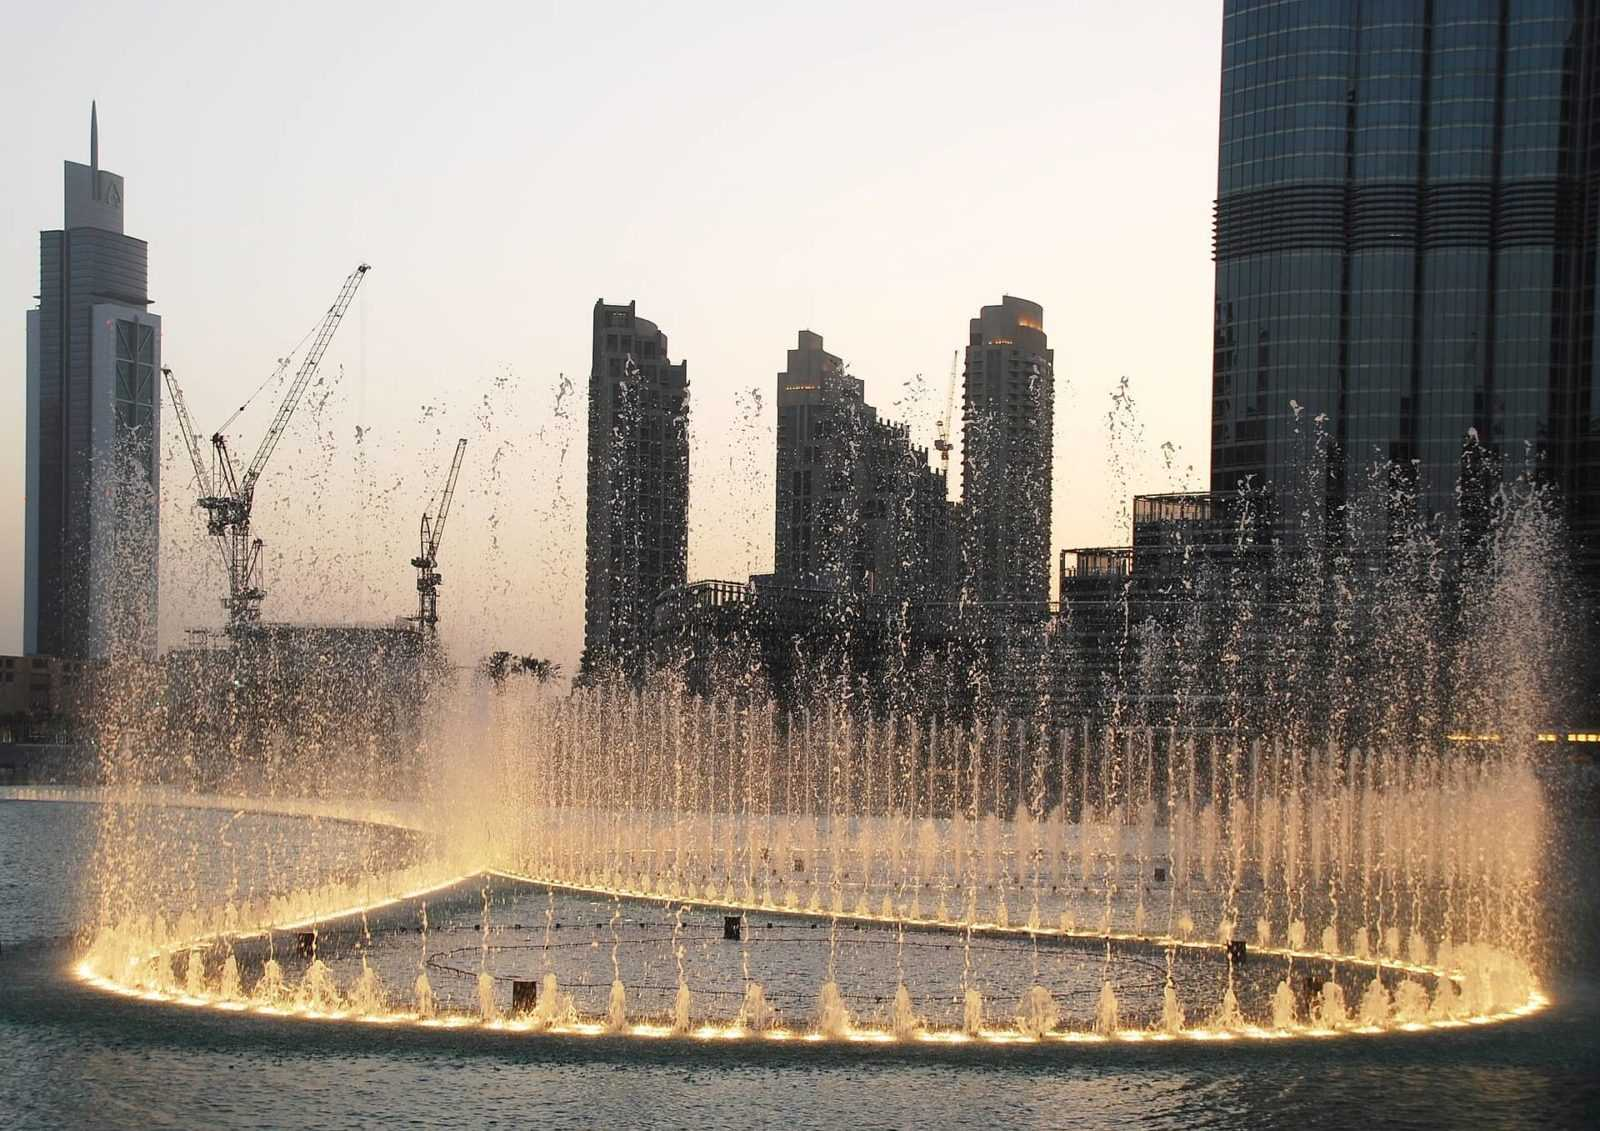 Things to Do in Dubai - Dubai fountains